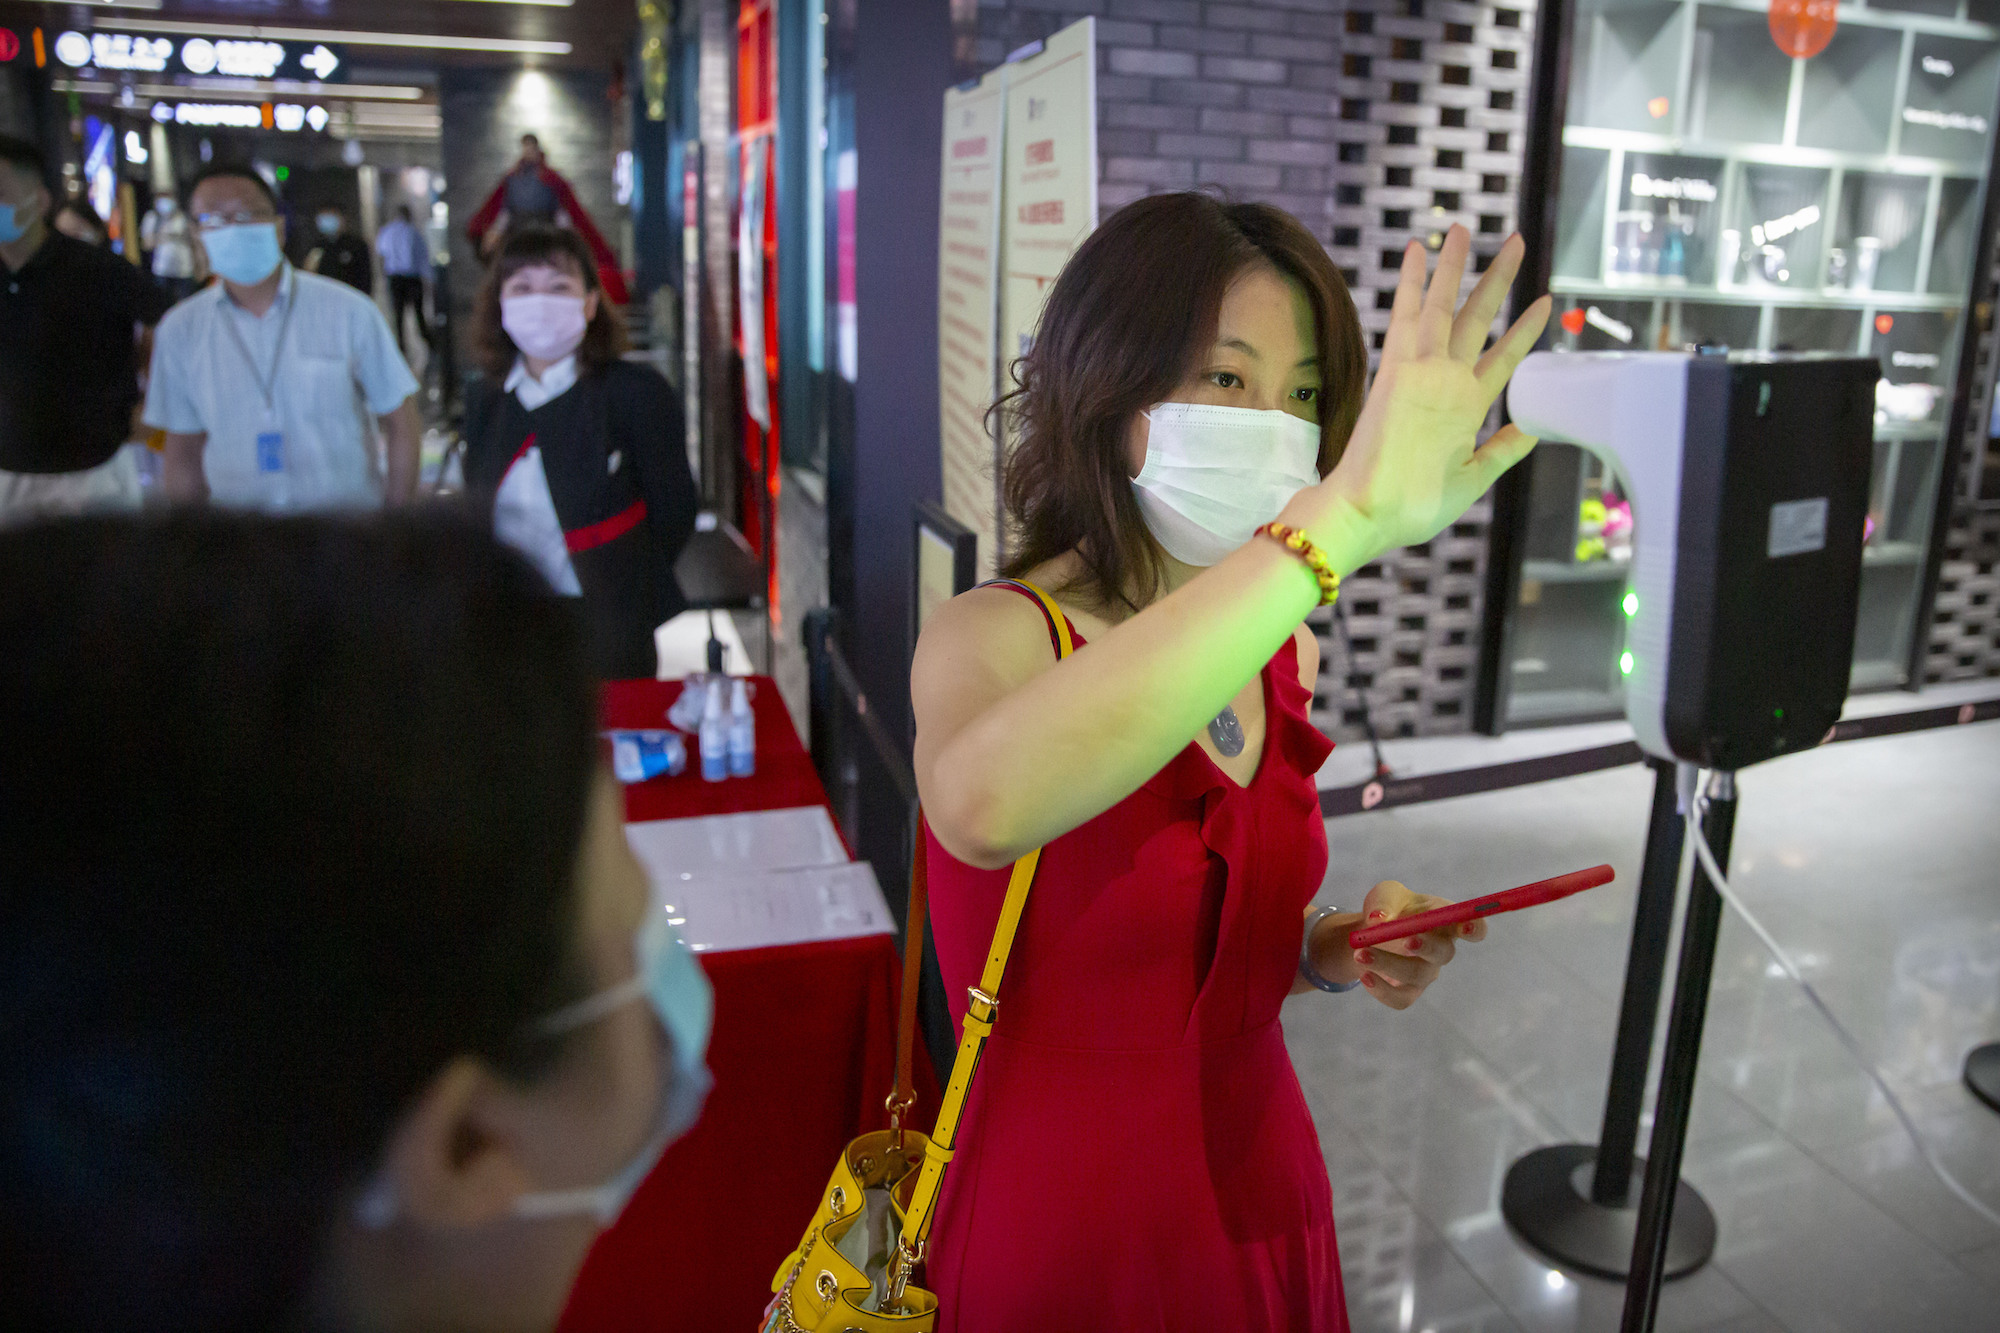 A patron wearing a face mask to protect against the coronavirus holds her hand to a temperature scanner as she enters a movie theater in Beijing, Friday, July 24, 2020. Beijing partially reopened movie theaters Friday as the threat from the coronavirus continues to recede in China's capital. (AP Photo/Mark Schiefelbein)